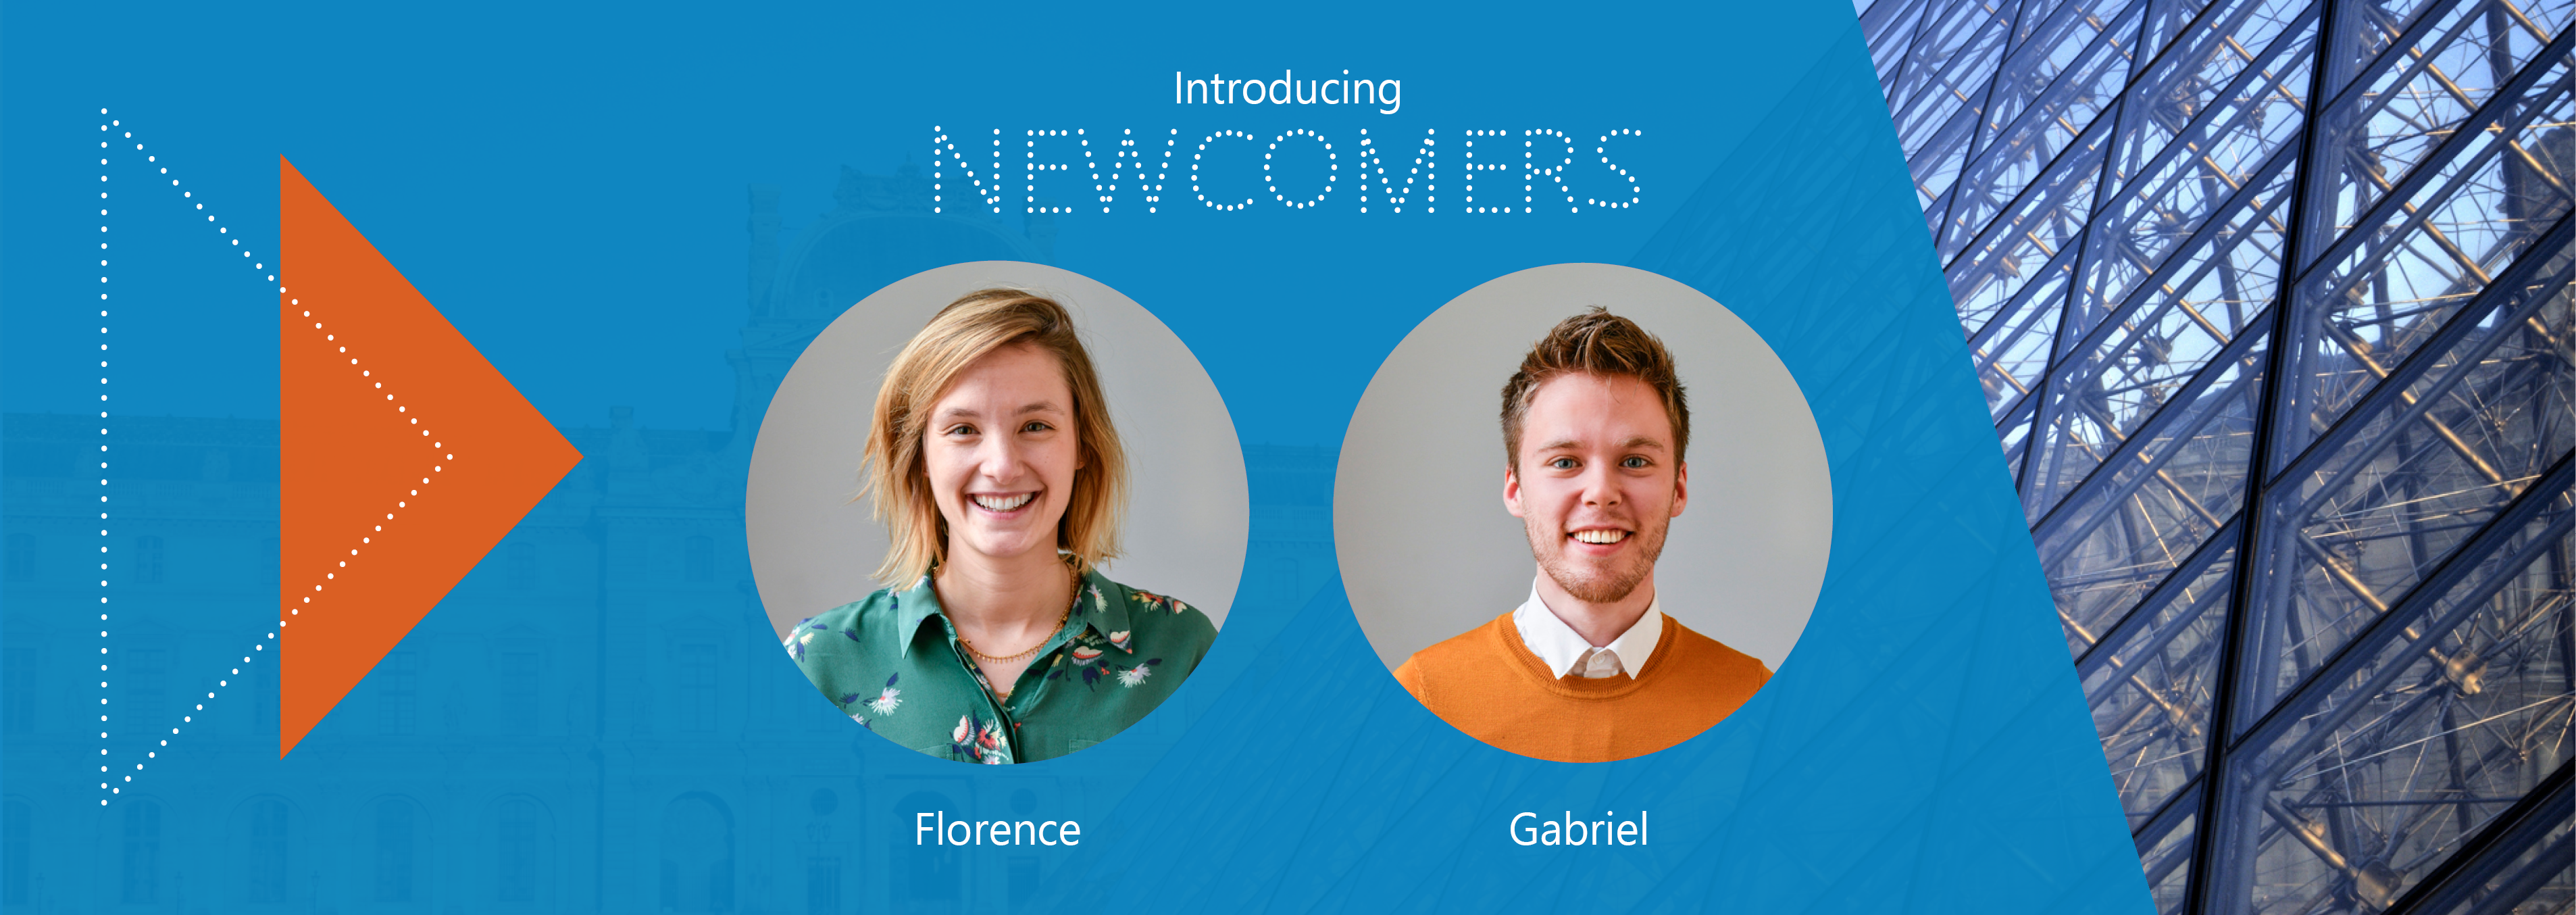 Welcome Florence and Gabriel